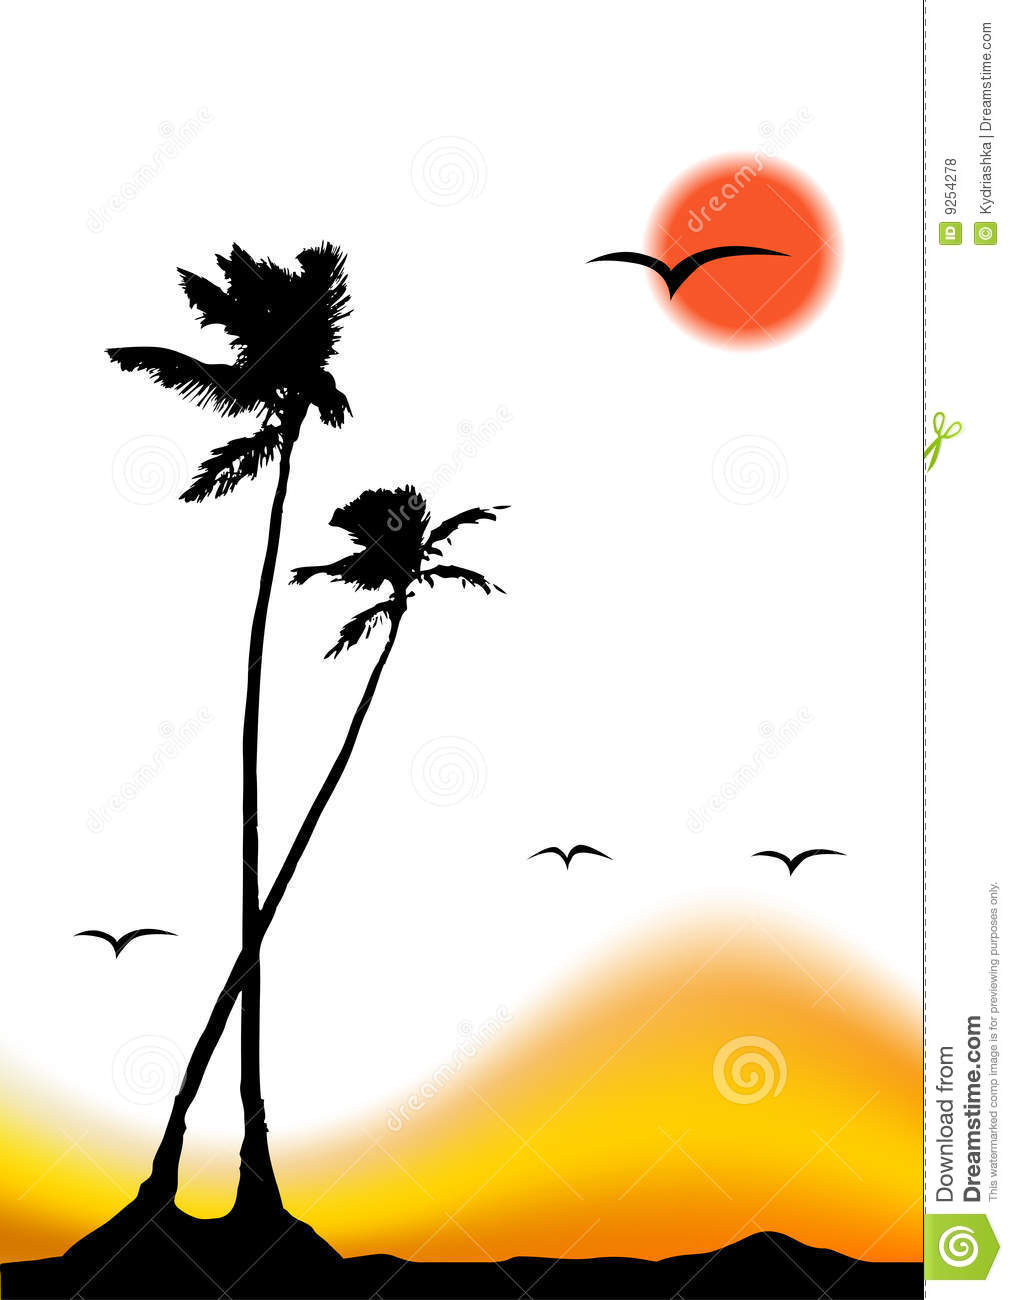 Palm Tree clipart group Tree Silhouette Palm Clipart Images